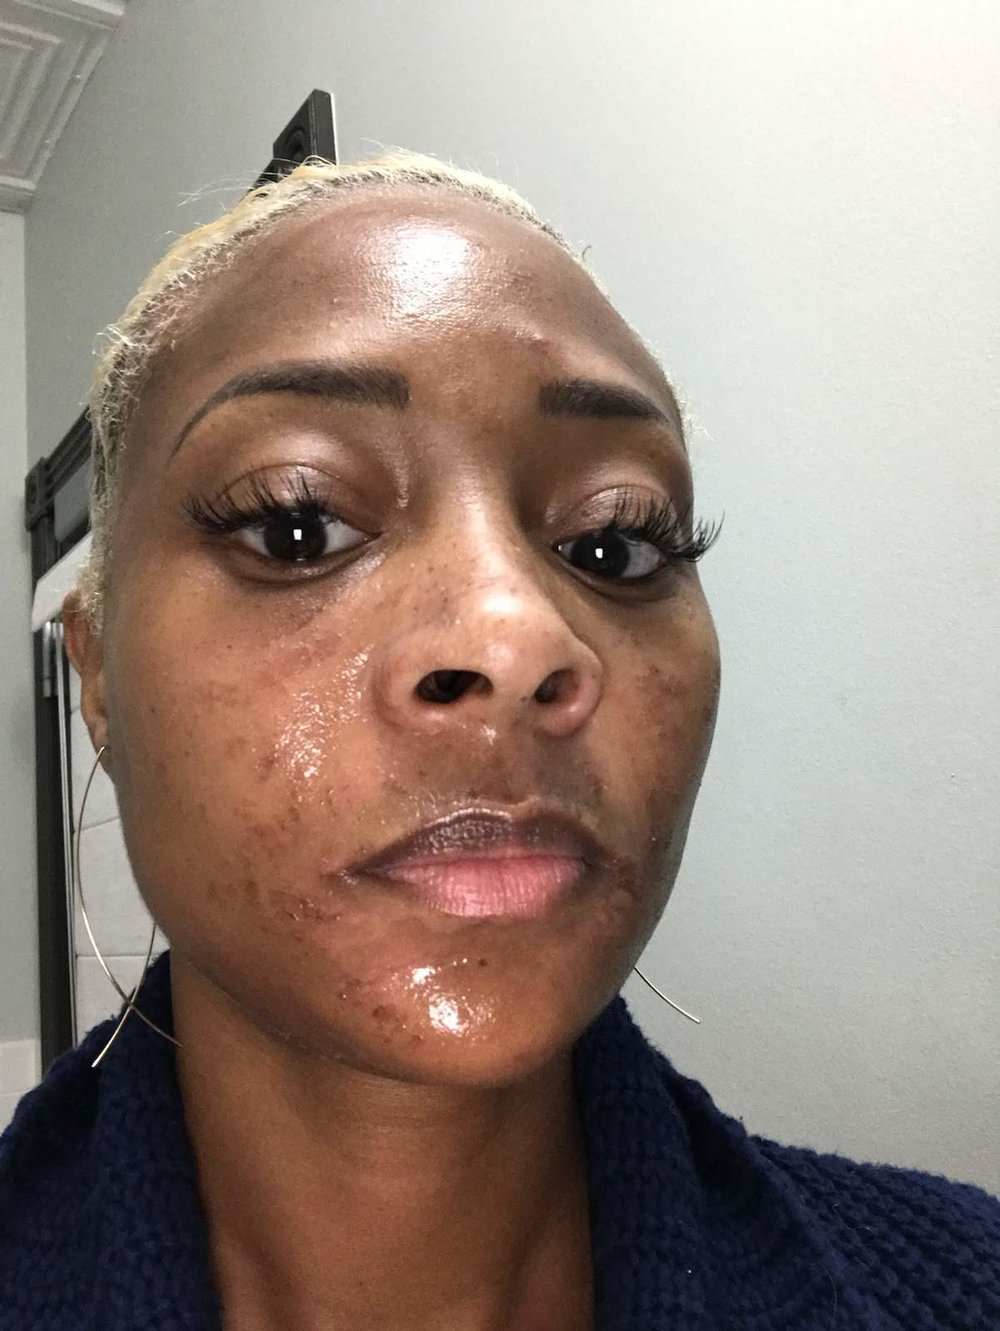 Day after Chemical Peel